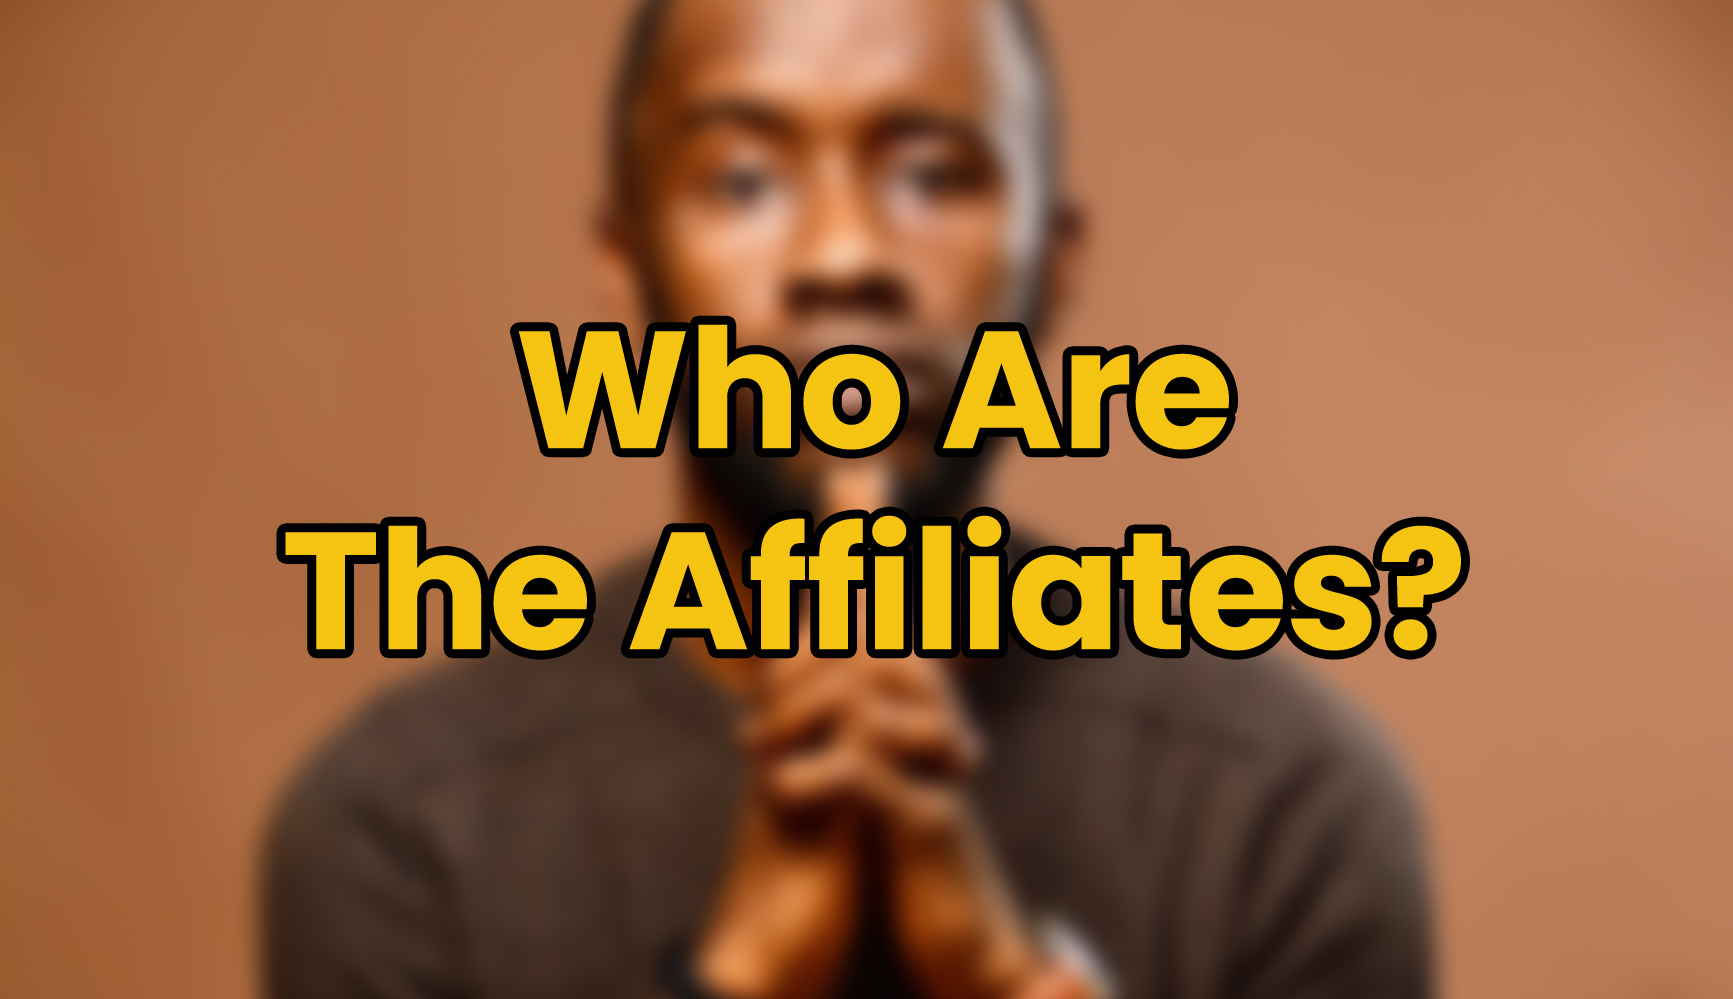 Who Are the Affiliates?